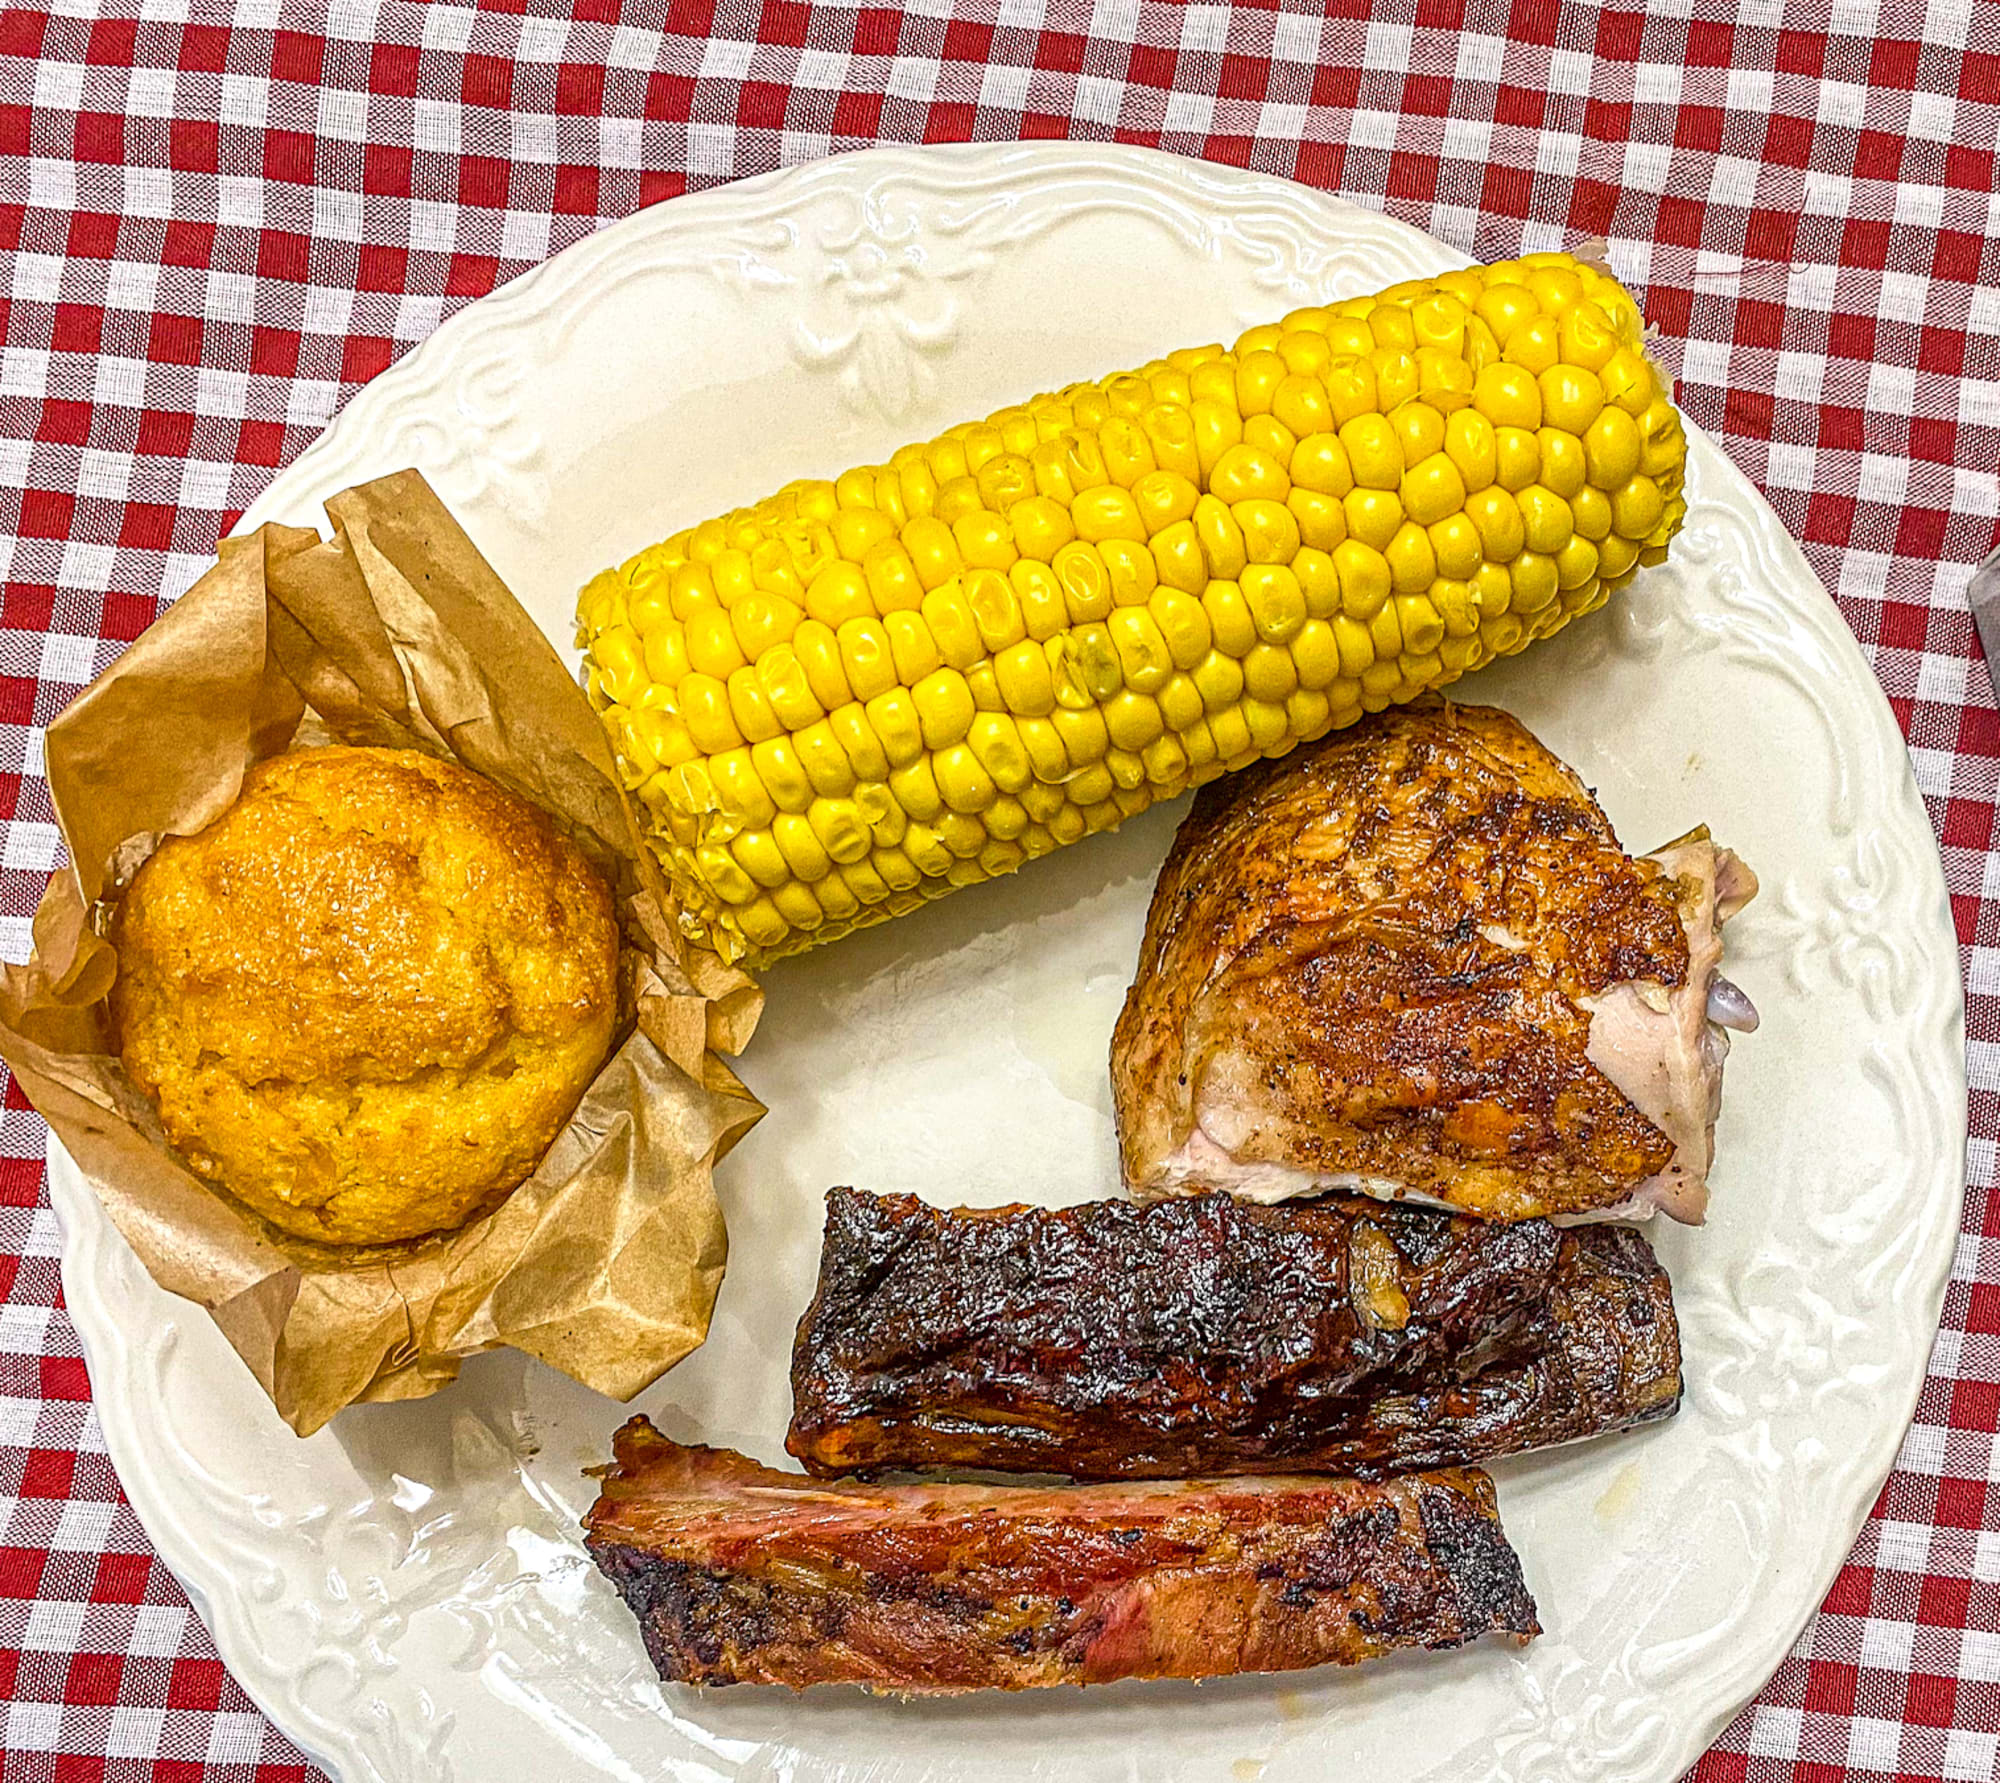 A delicious summer barbecue needs these key ingredients